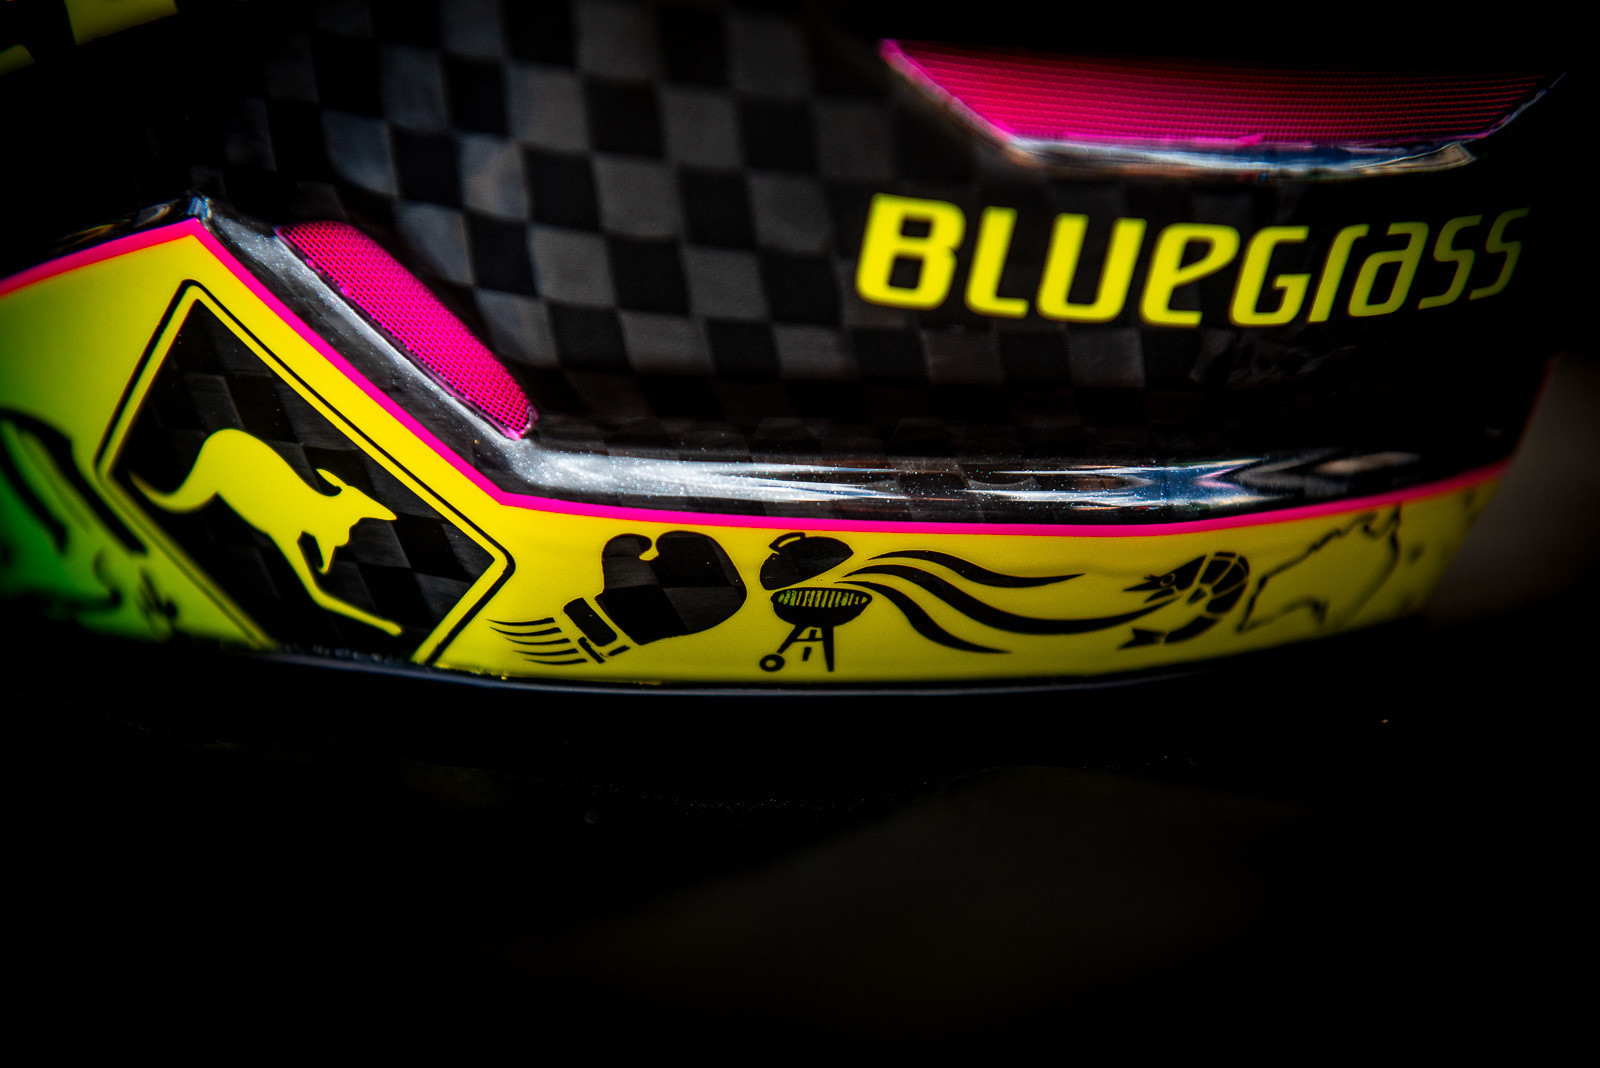 Tracey's Bluegrass Helmet - WORLD CHAMPS BIKES - Mick & Tracey Hannah's Polygons - Mountain Biking Pictures - Vital MTB